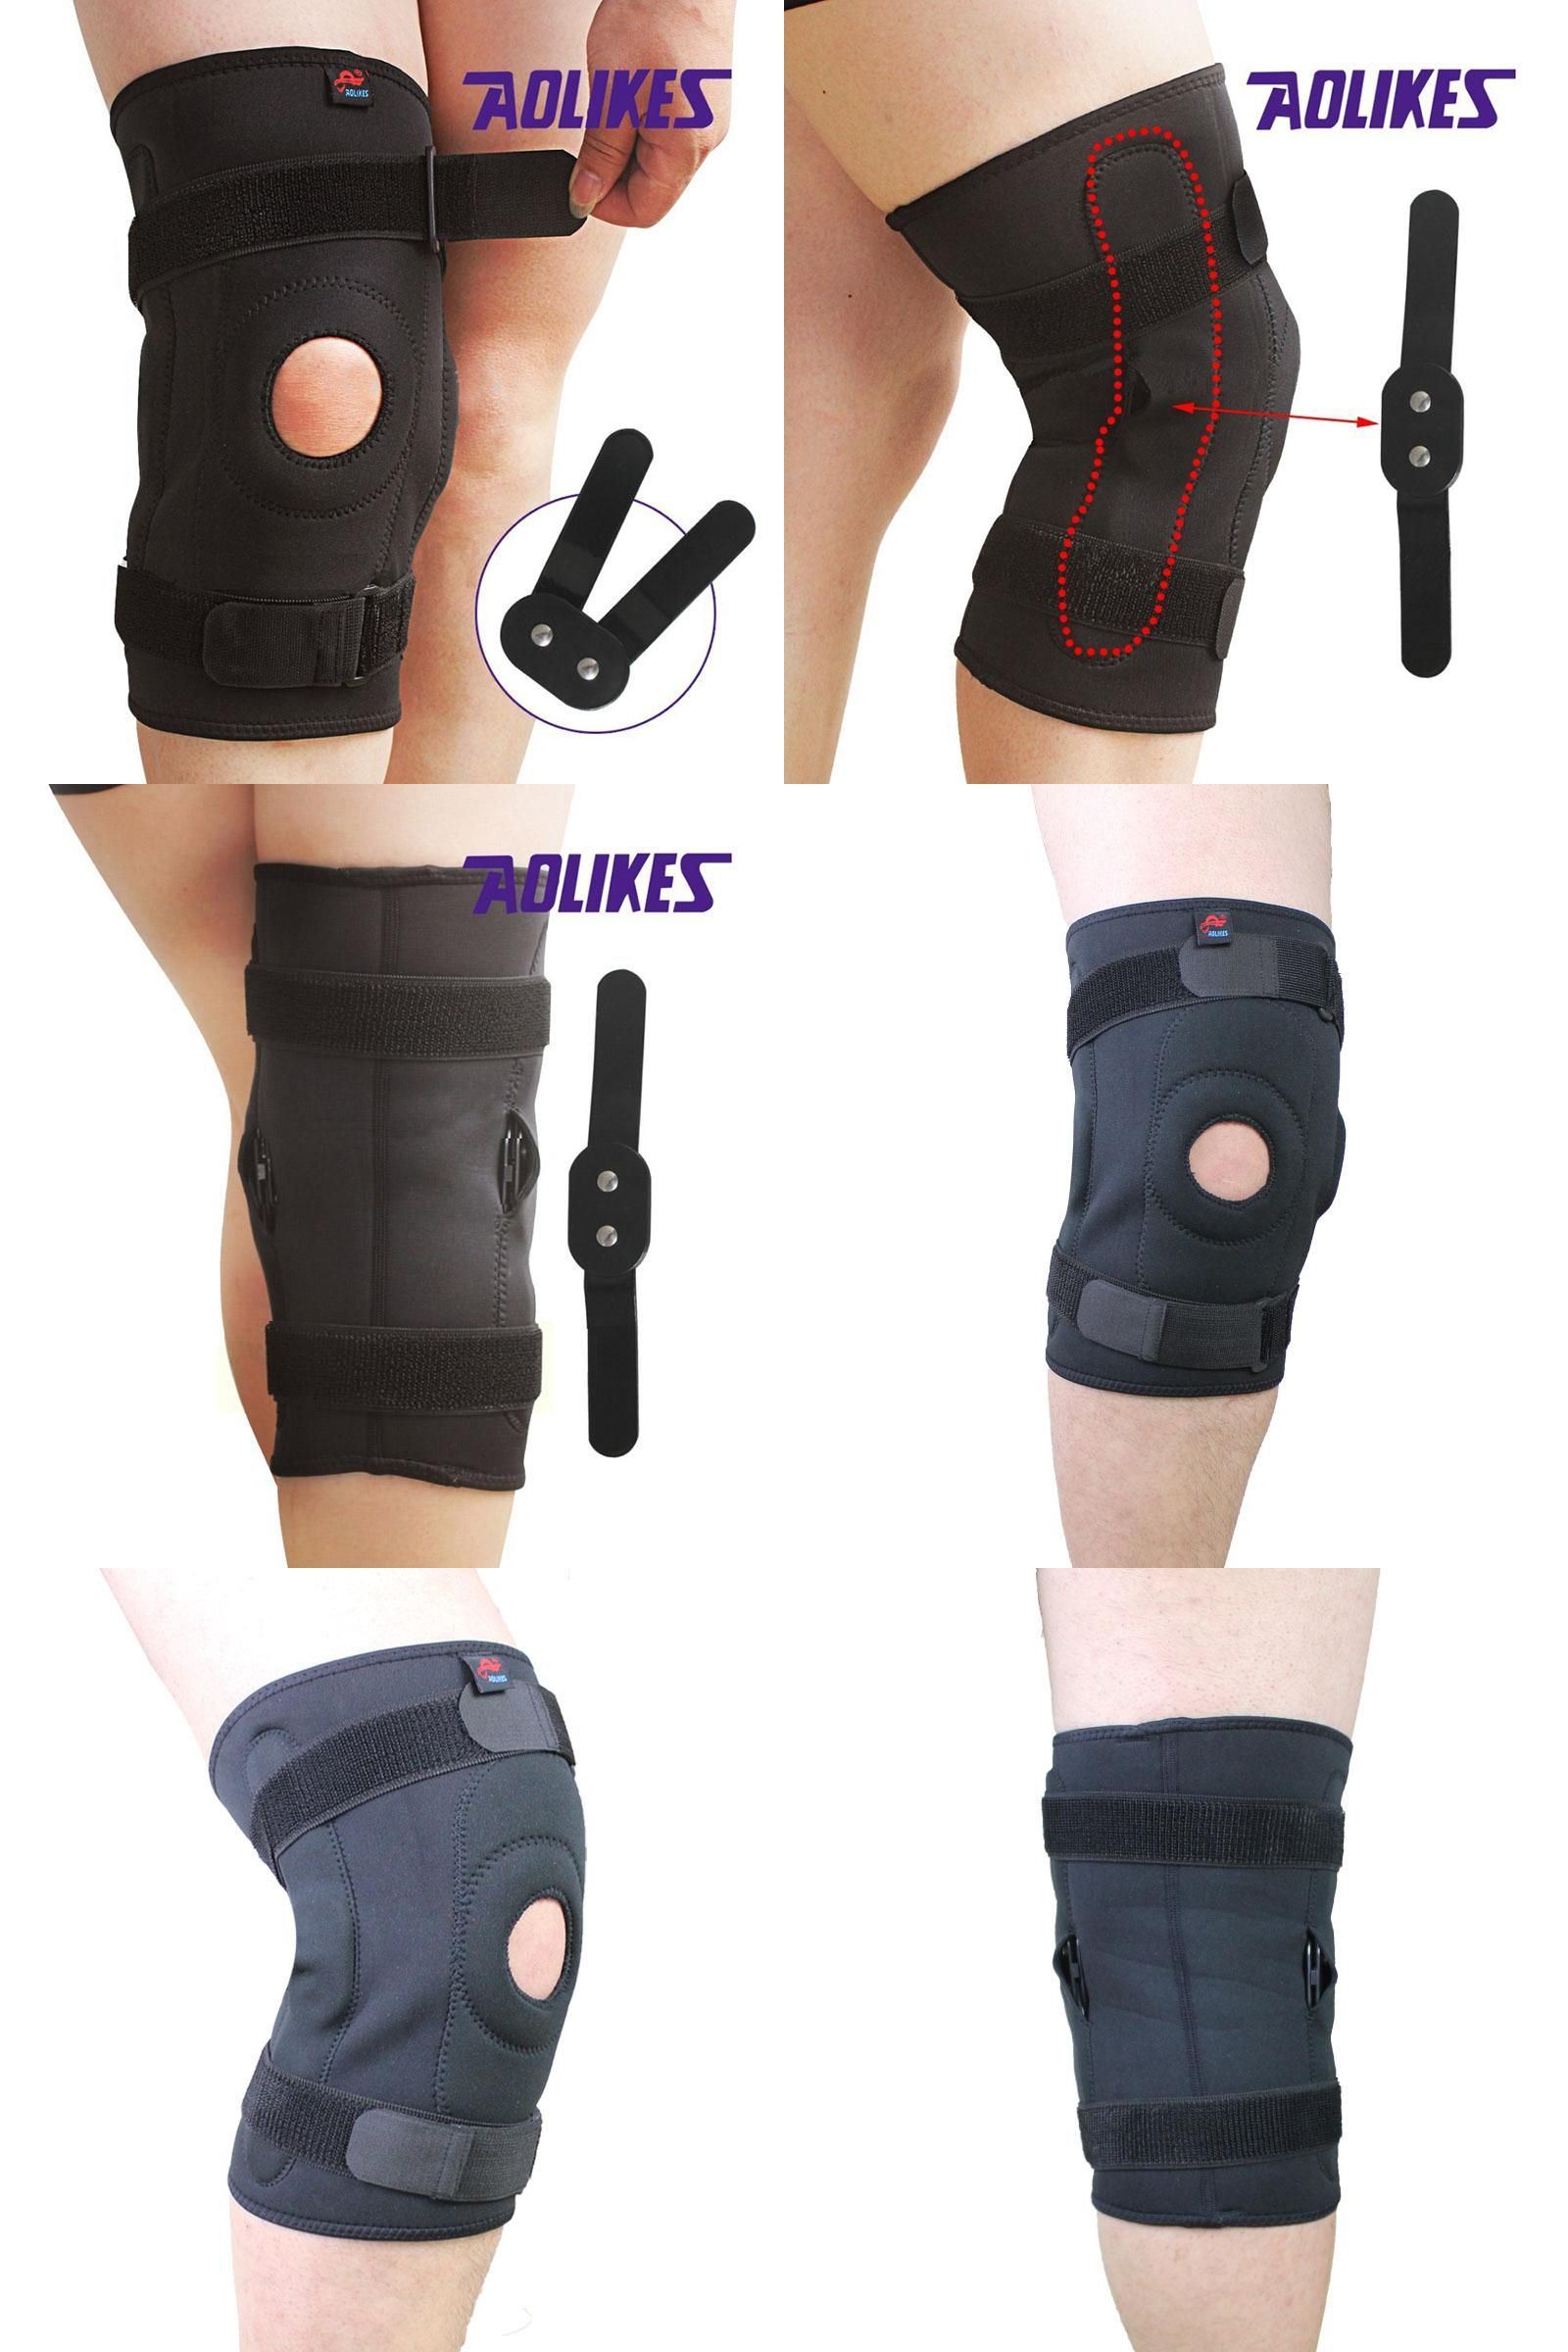 Visit To Buy Sports Safety Knee Pads Double Steel Plate Knee Support Guard Exercise Training Sports Riding Cyclin Safety Knee Pads Sports Safety Knee Support